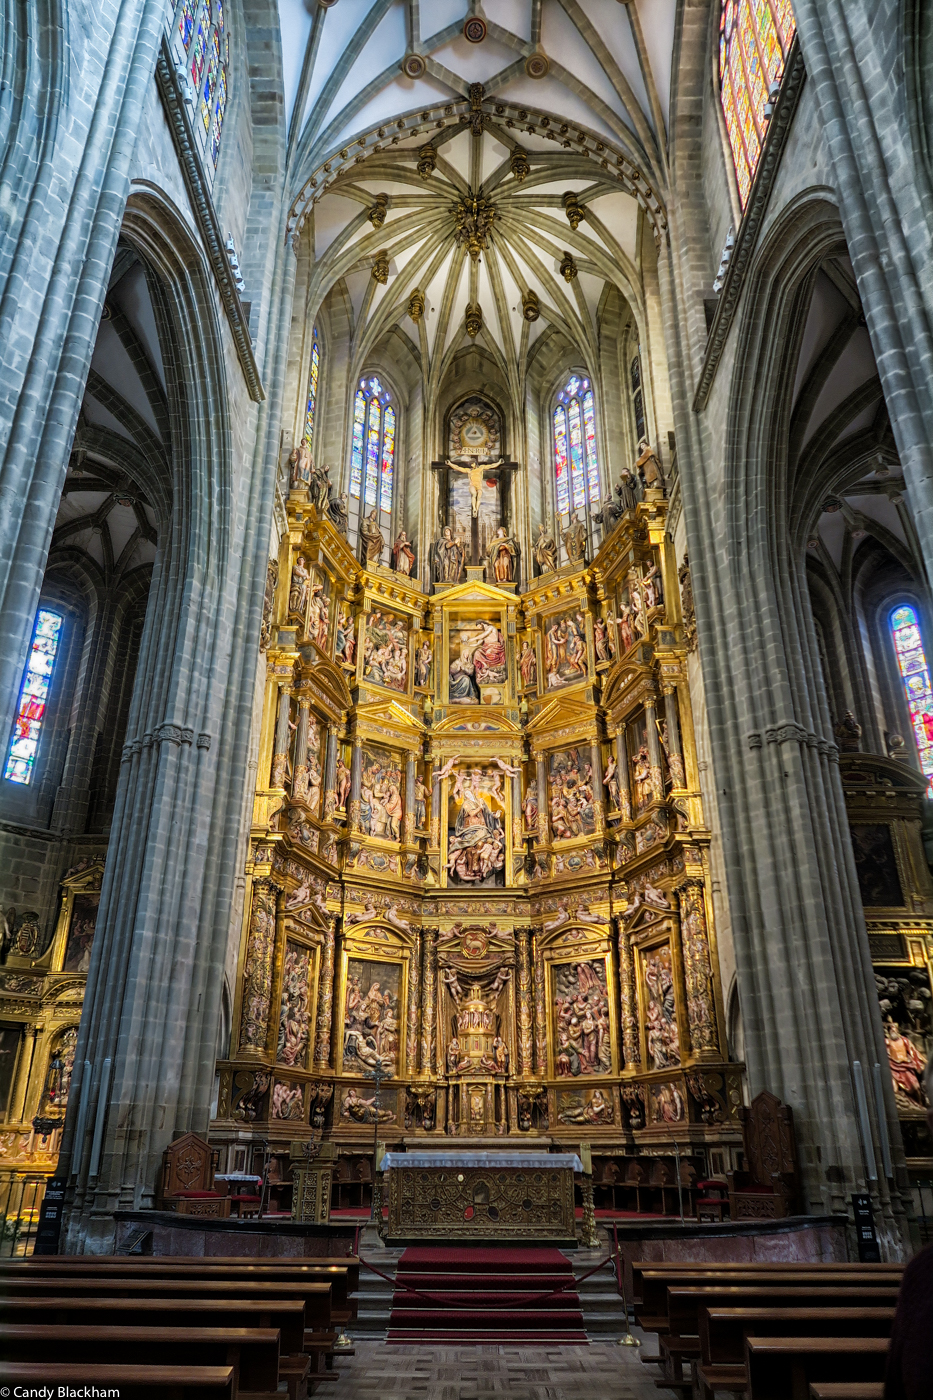 The High Altar of the Cathedral in Astorga